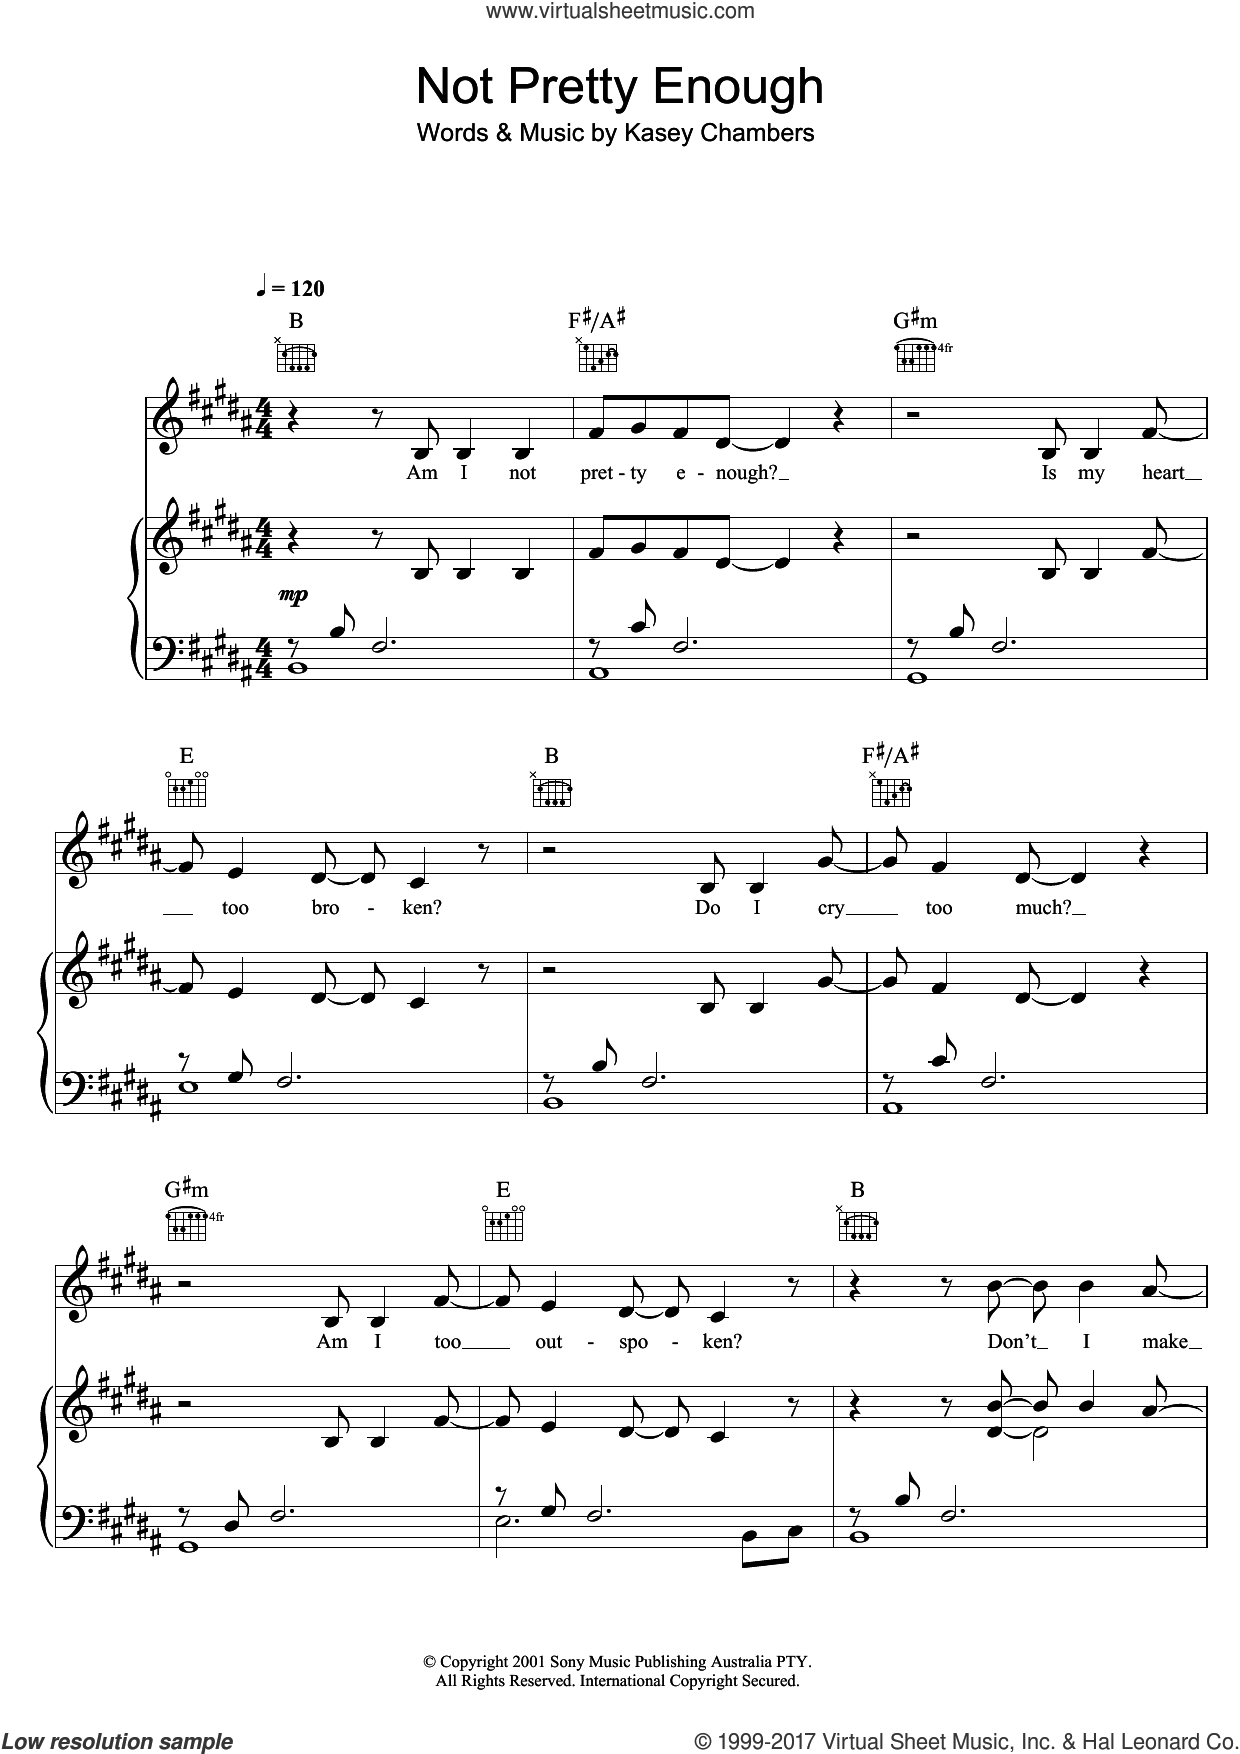 Not Pretty Enough sheet music for voice, piano or guitar by Kasey Chambers, intermediate. Score Image Preview.